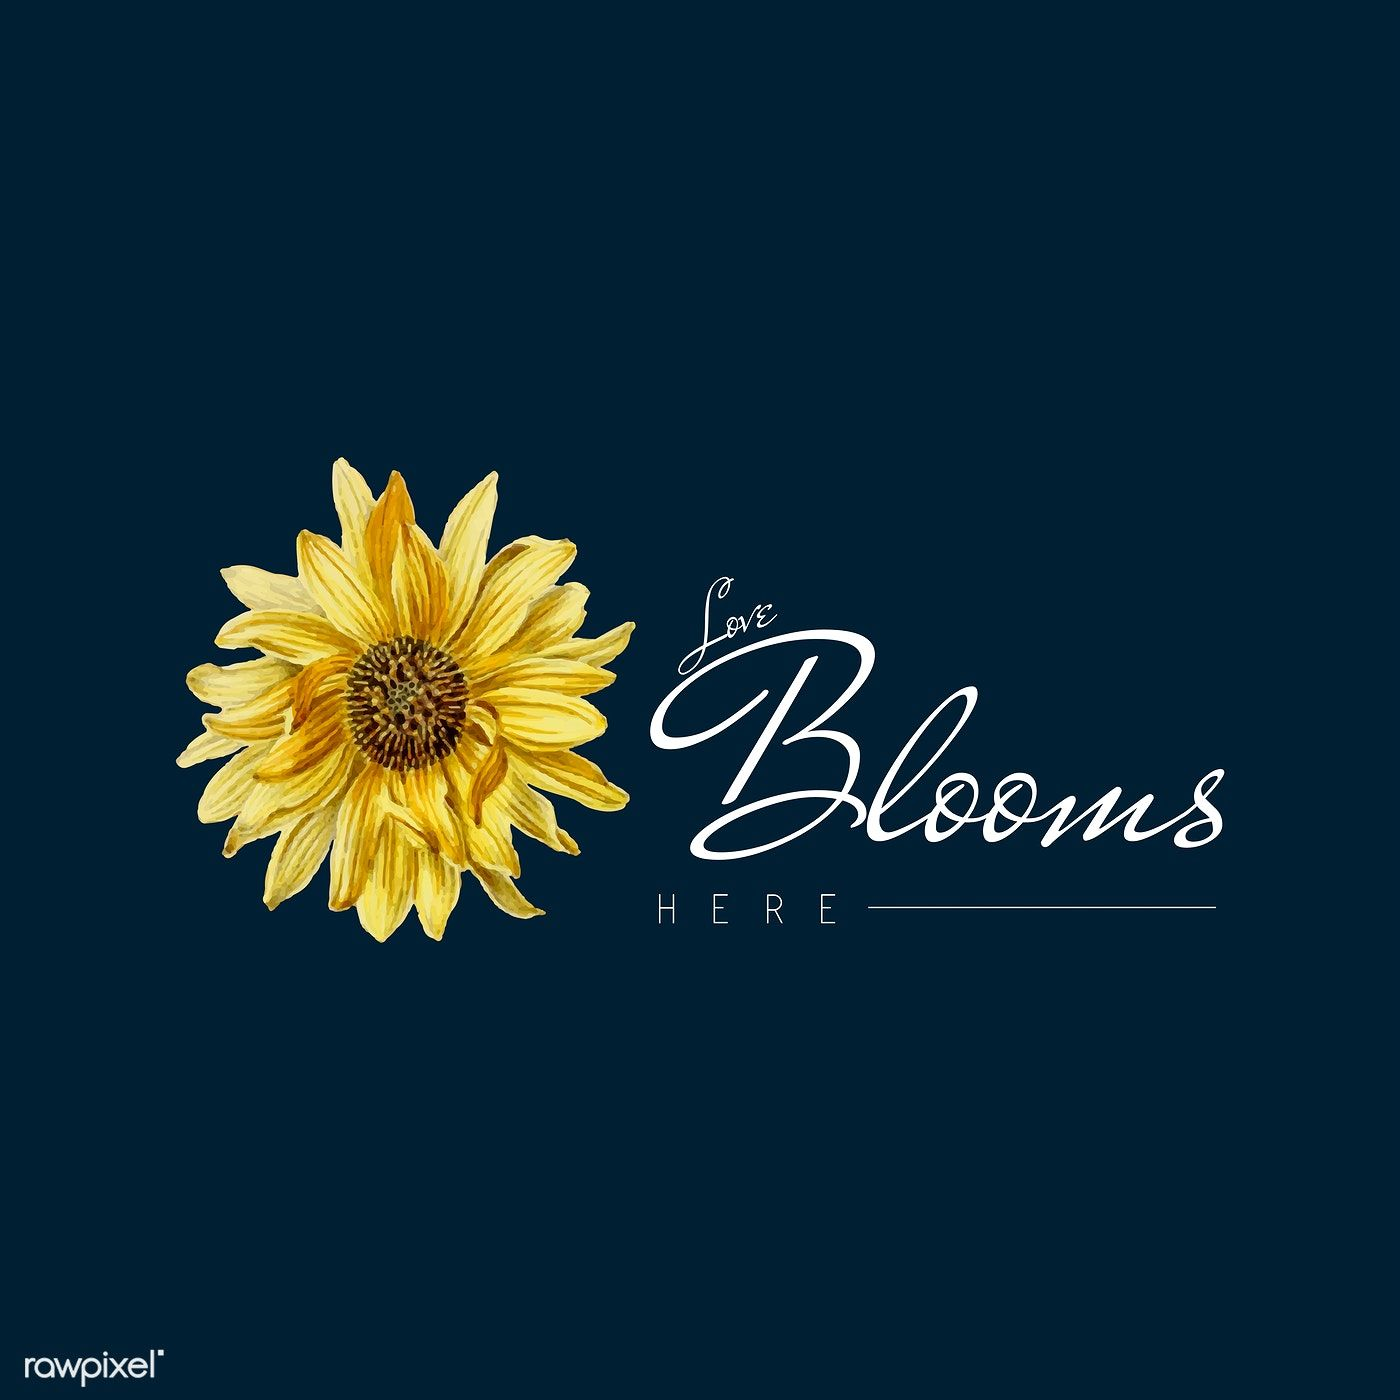 Download Love Blooms Here Svg